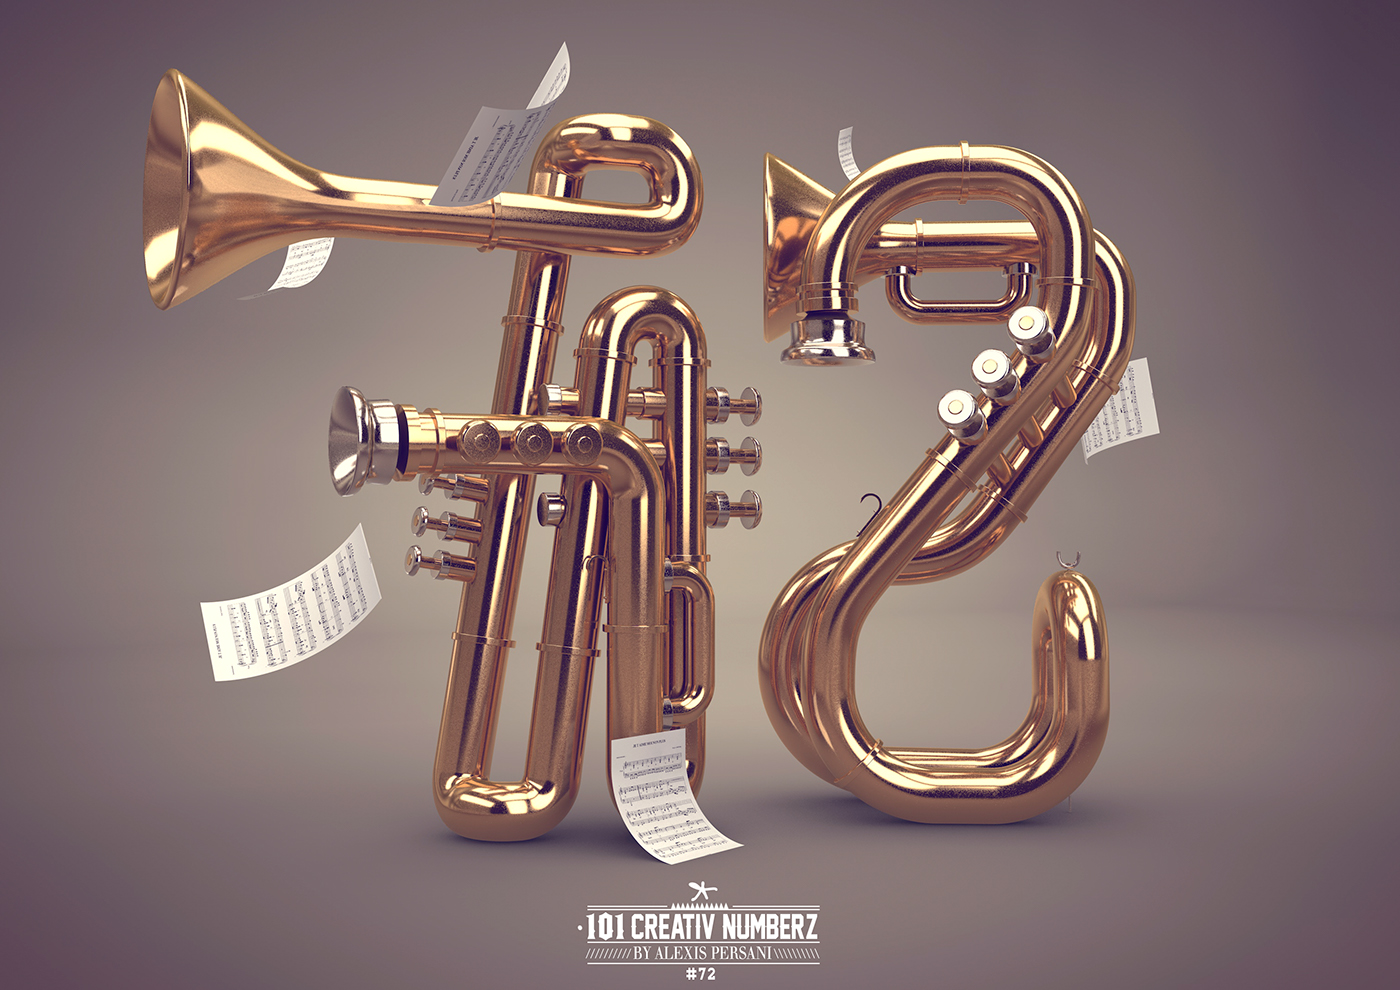 Outstanding 101 Creative Numbers Typography by Alexis Persani 66